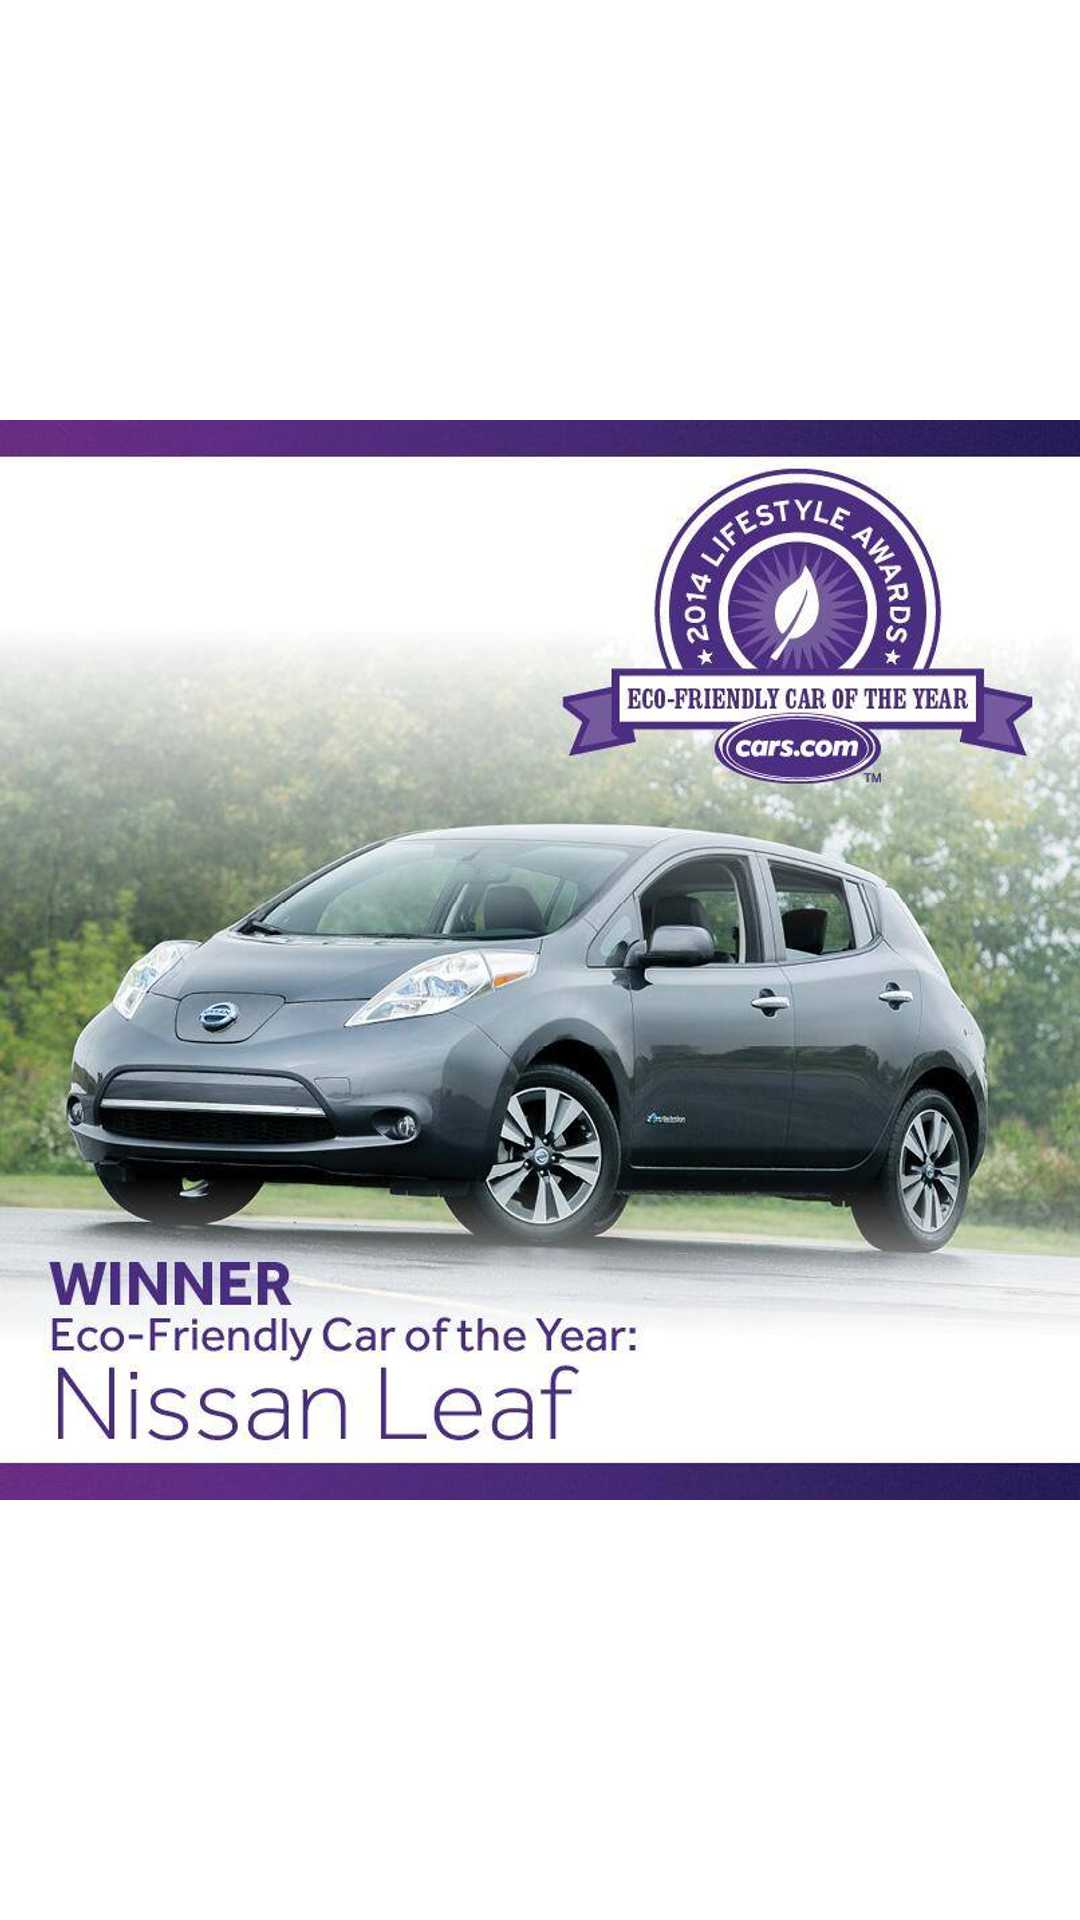 Nissan Leaf Beats Chevy Volt To Win Cars Eco Friendly Car Of The Year Award